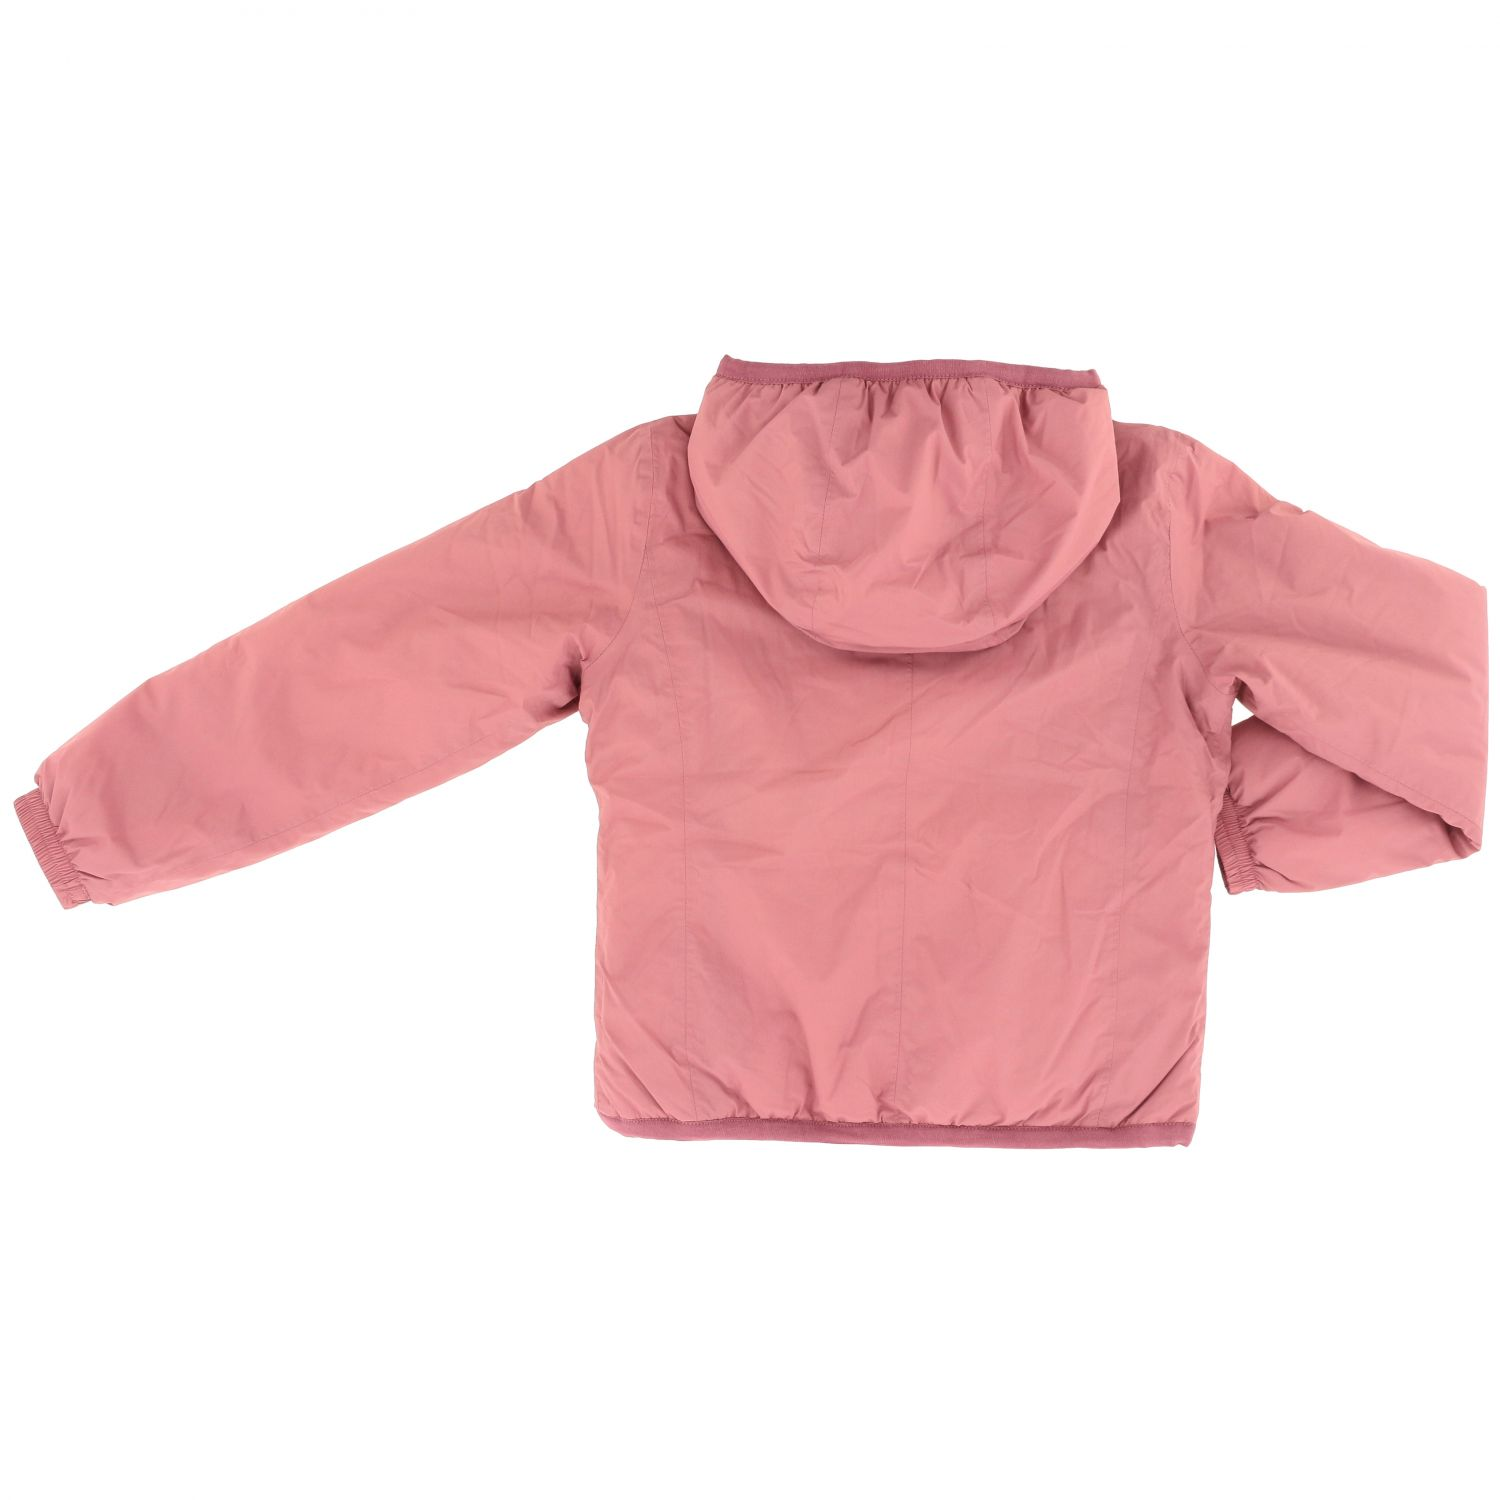 Jacket K-Way: Jacket kids K-way pink 2